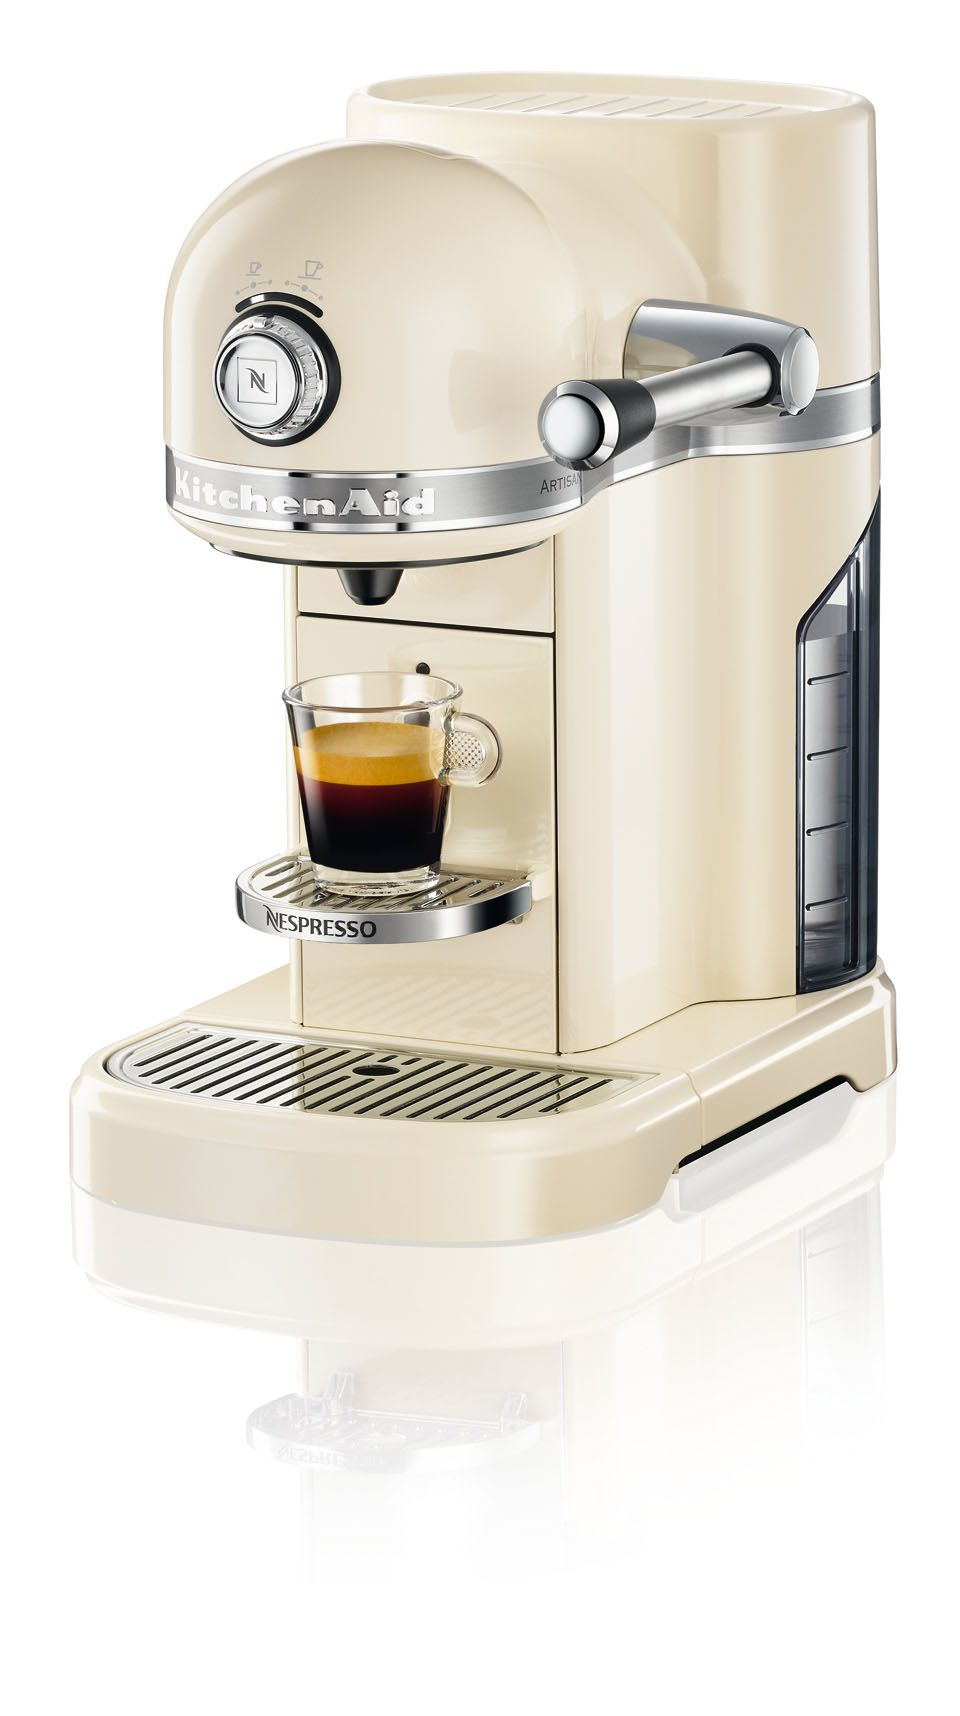 Nespresso x KitchenAid | Nespresso and KitchenAid on black and decker coffee maker, braun coffee maker, thermal coffee maker, viking coffee maker, coffee maker grinder, thermal carafe coffee maker, capresso coffee maker, dual coffee maker, 14 cup coffee maker, starbucks coffee maker, automatic coffee machines, cuisinart coffee maker, blue coffee maker, 4 cup coffee makers, 1 cup coffee maker, 4 cup coffee maker, spacemaker coffee maker, vacuum coffee maker, farberware coffee maker, black & decker coffee maker, bunn coffee maker, target red coffee maker, 60 cup coffee maker, mr coffee maker, grind and brew coffee makers, 12 cup coffee maker, personal coffee maker, under cabinet coffee maker, nespresso coffee maker,